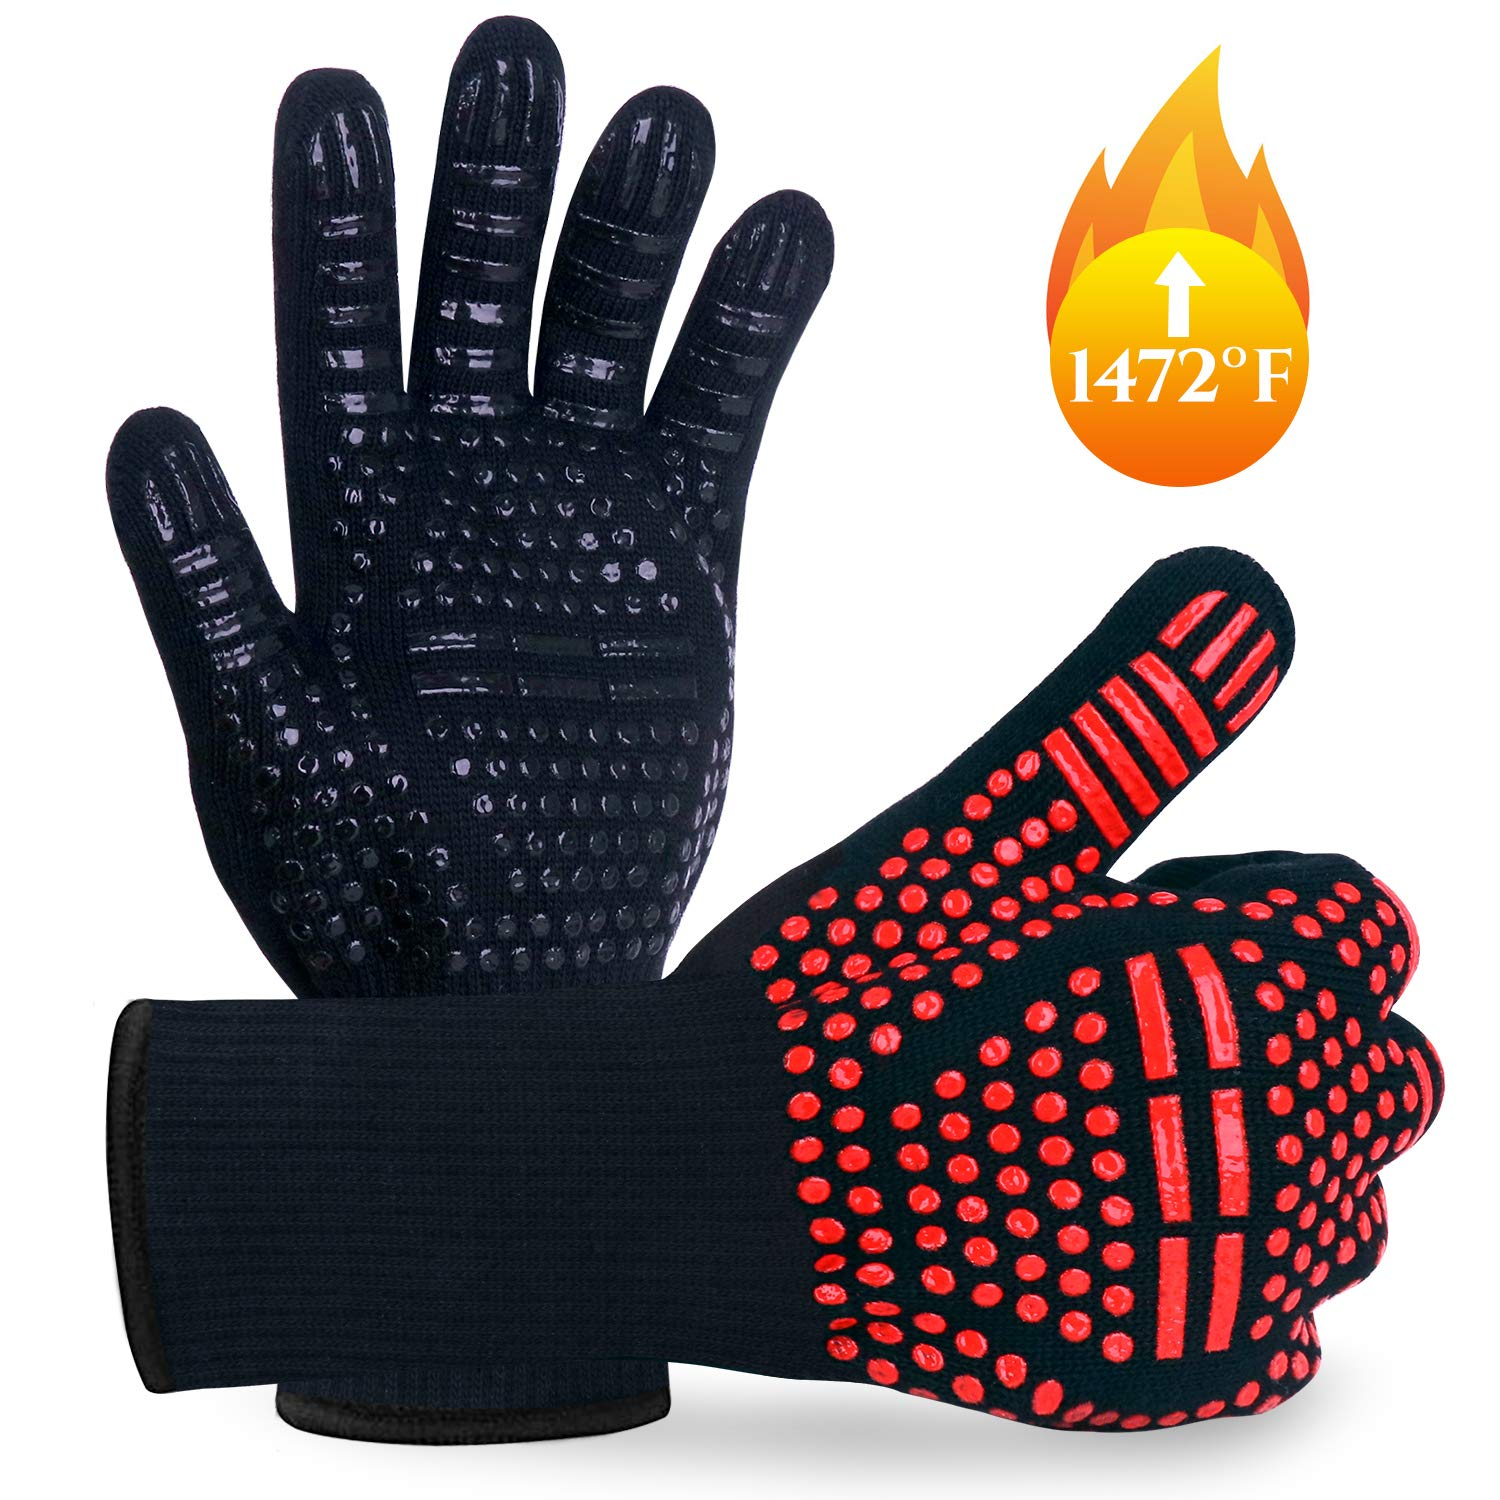 Upgraded BBQ Gloves 1472℉ Extreme Heat Resistant Grill Gloves, Food Grade Kitchen Oven Mitts, Silicone Non-Slip Cooking Gloves for Barbecue, Cooking, Baking, Welding, Cutting, 14 Inch (Red+Black) by MUEAST